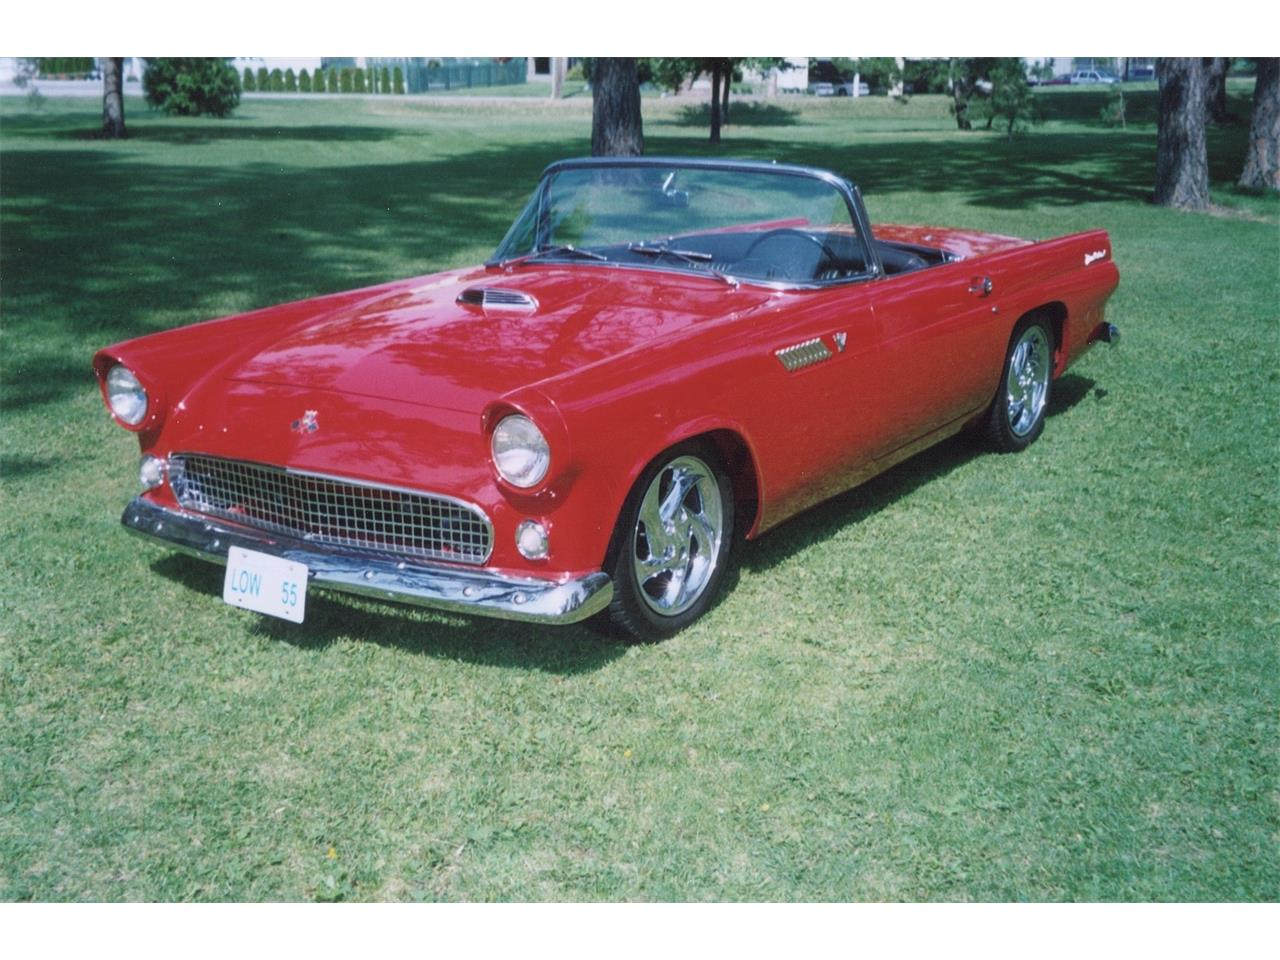 Large Picture of '55 Ford Thunderbird located in West Kelowna British Columbia - $39,500.00 - GI3T